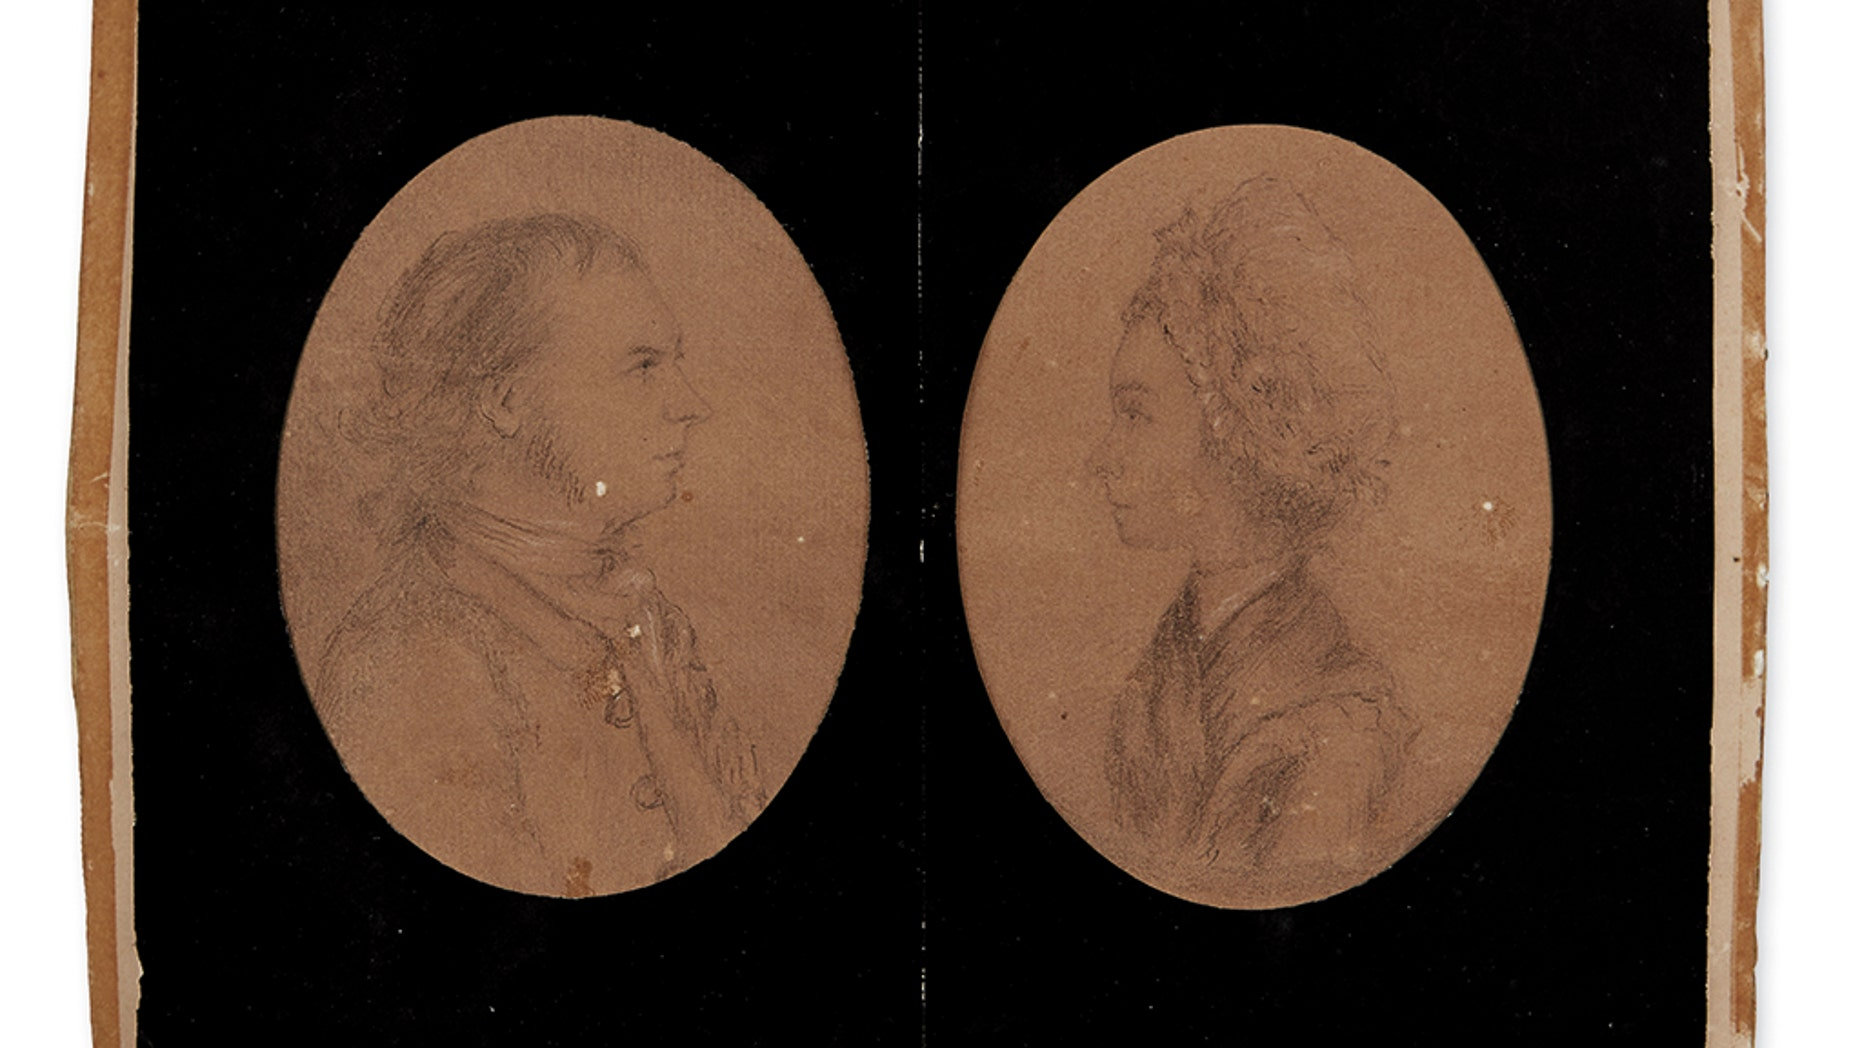 Two portraits drawn in Albany during the Revolutionary War by British spy John Andre.